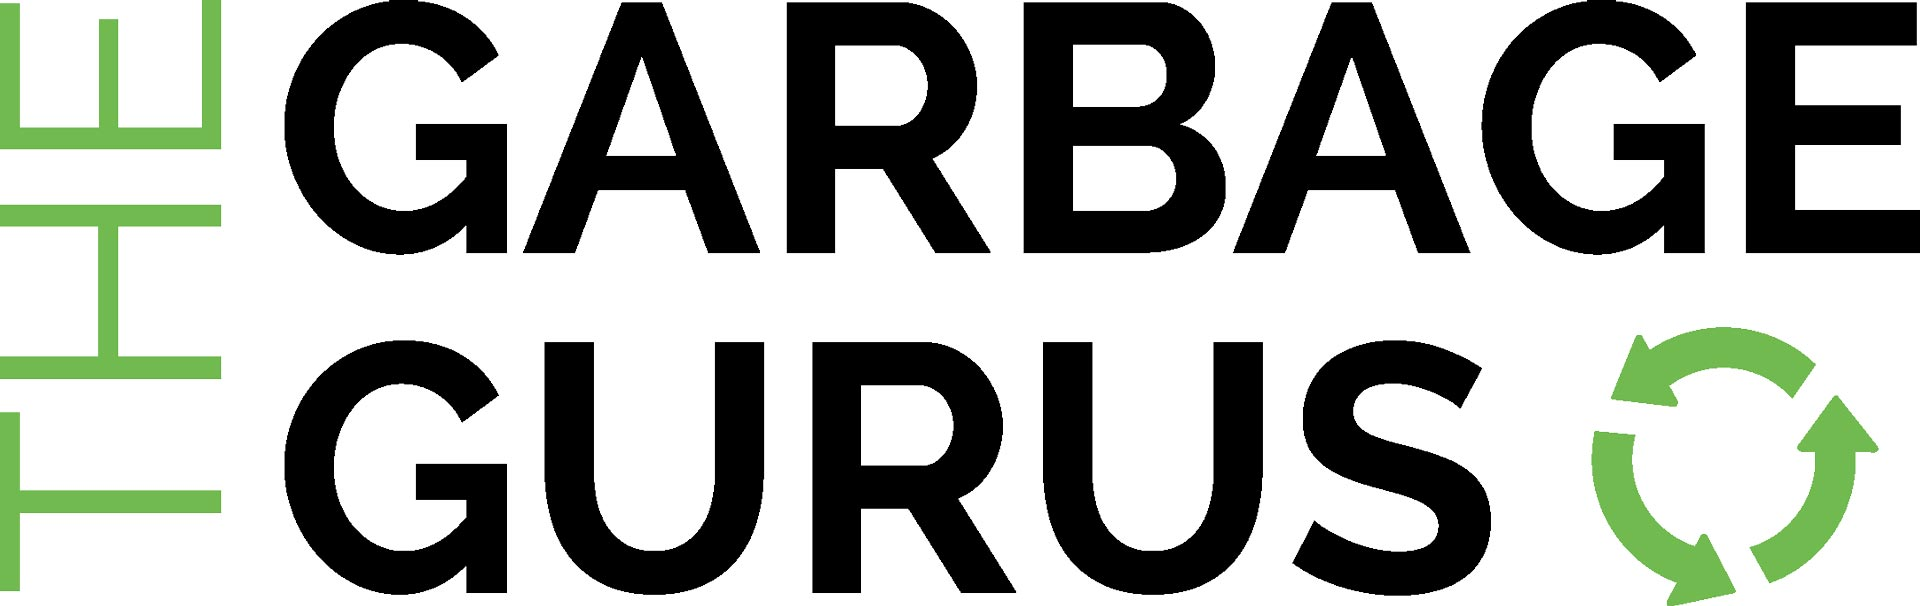 the garbage gurus logo